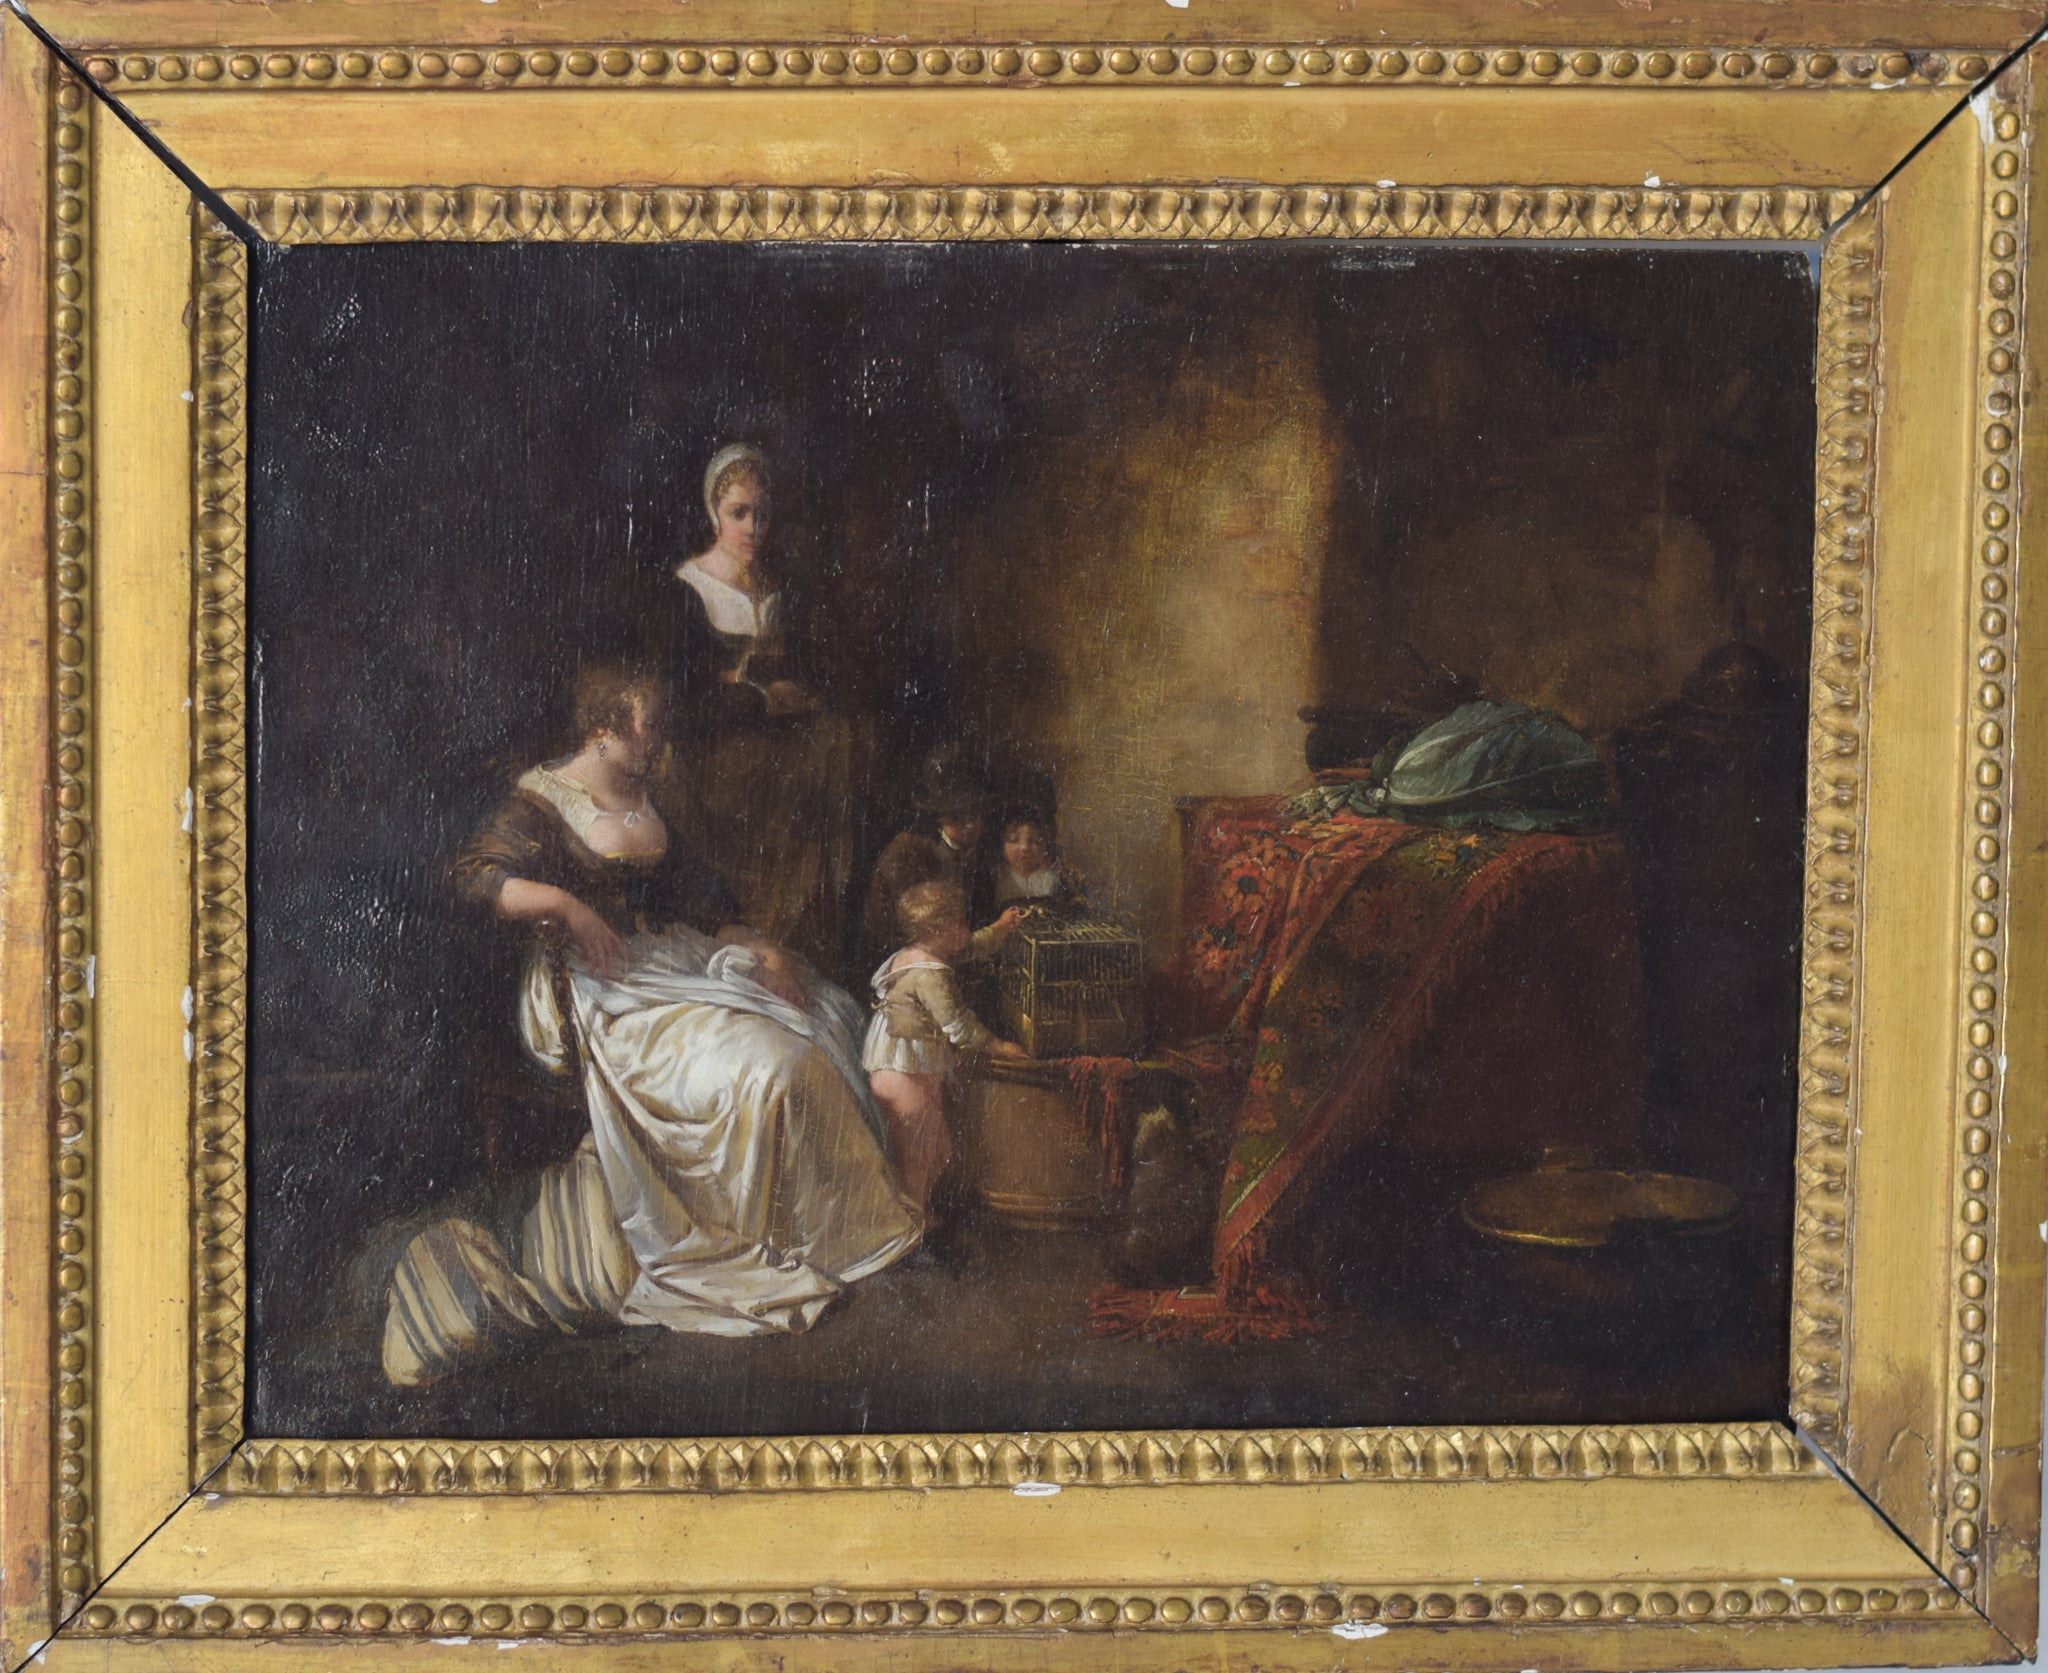 Late 18th Century Domestic scene with children feeding a bird in a cage with mother and maid_Framed